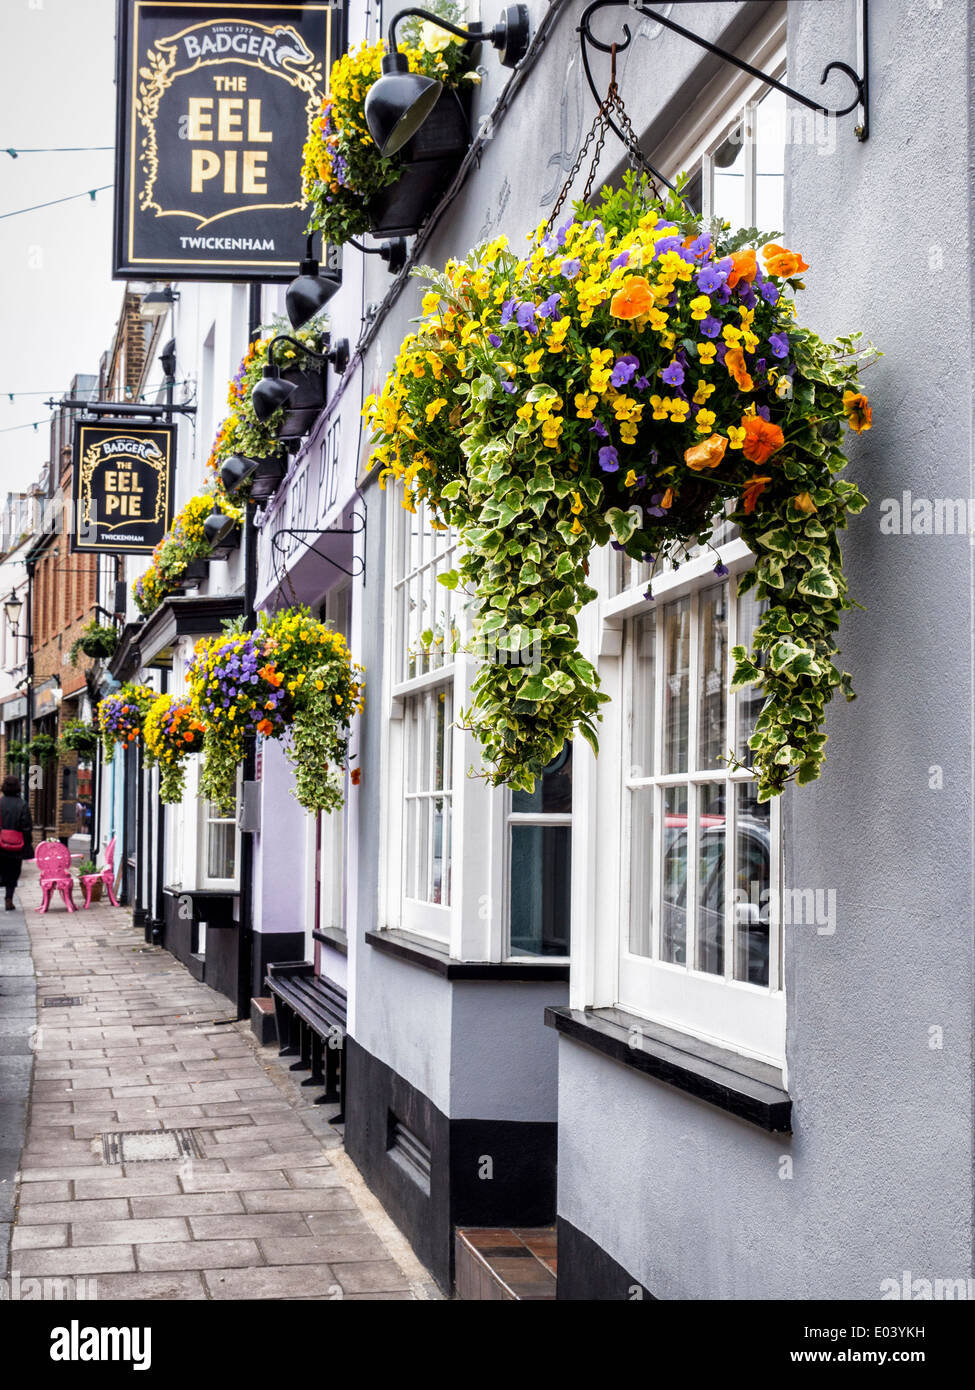 The Eel Pie pub exterior, sign and colourful flower baskets, Church Street, Twickenham, Greater London, UK - Stock Image